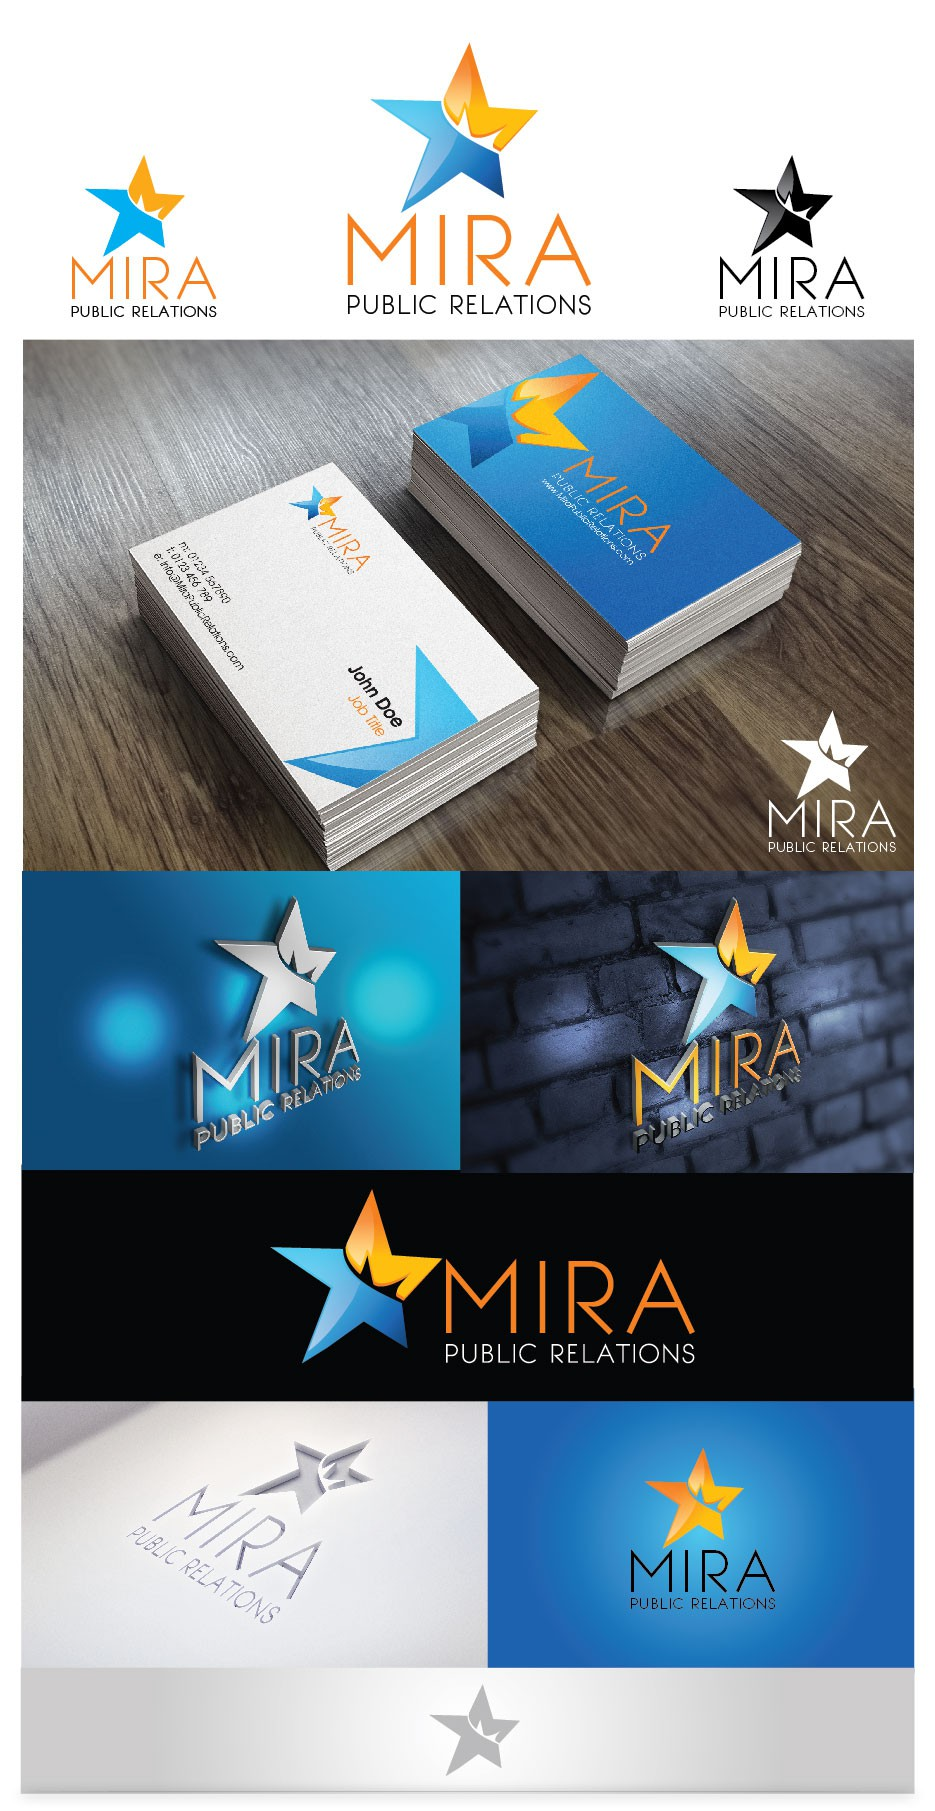 logo and business card for MIRA Public Relations